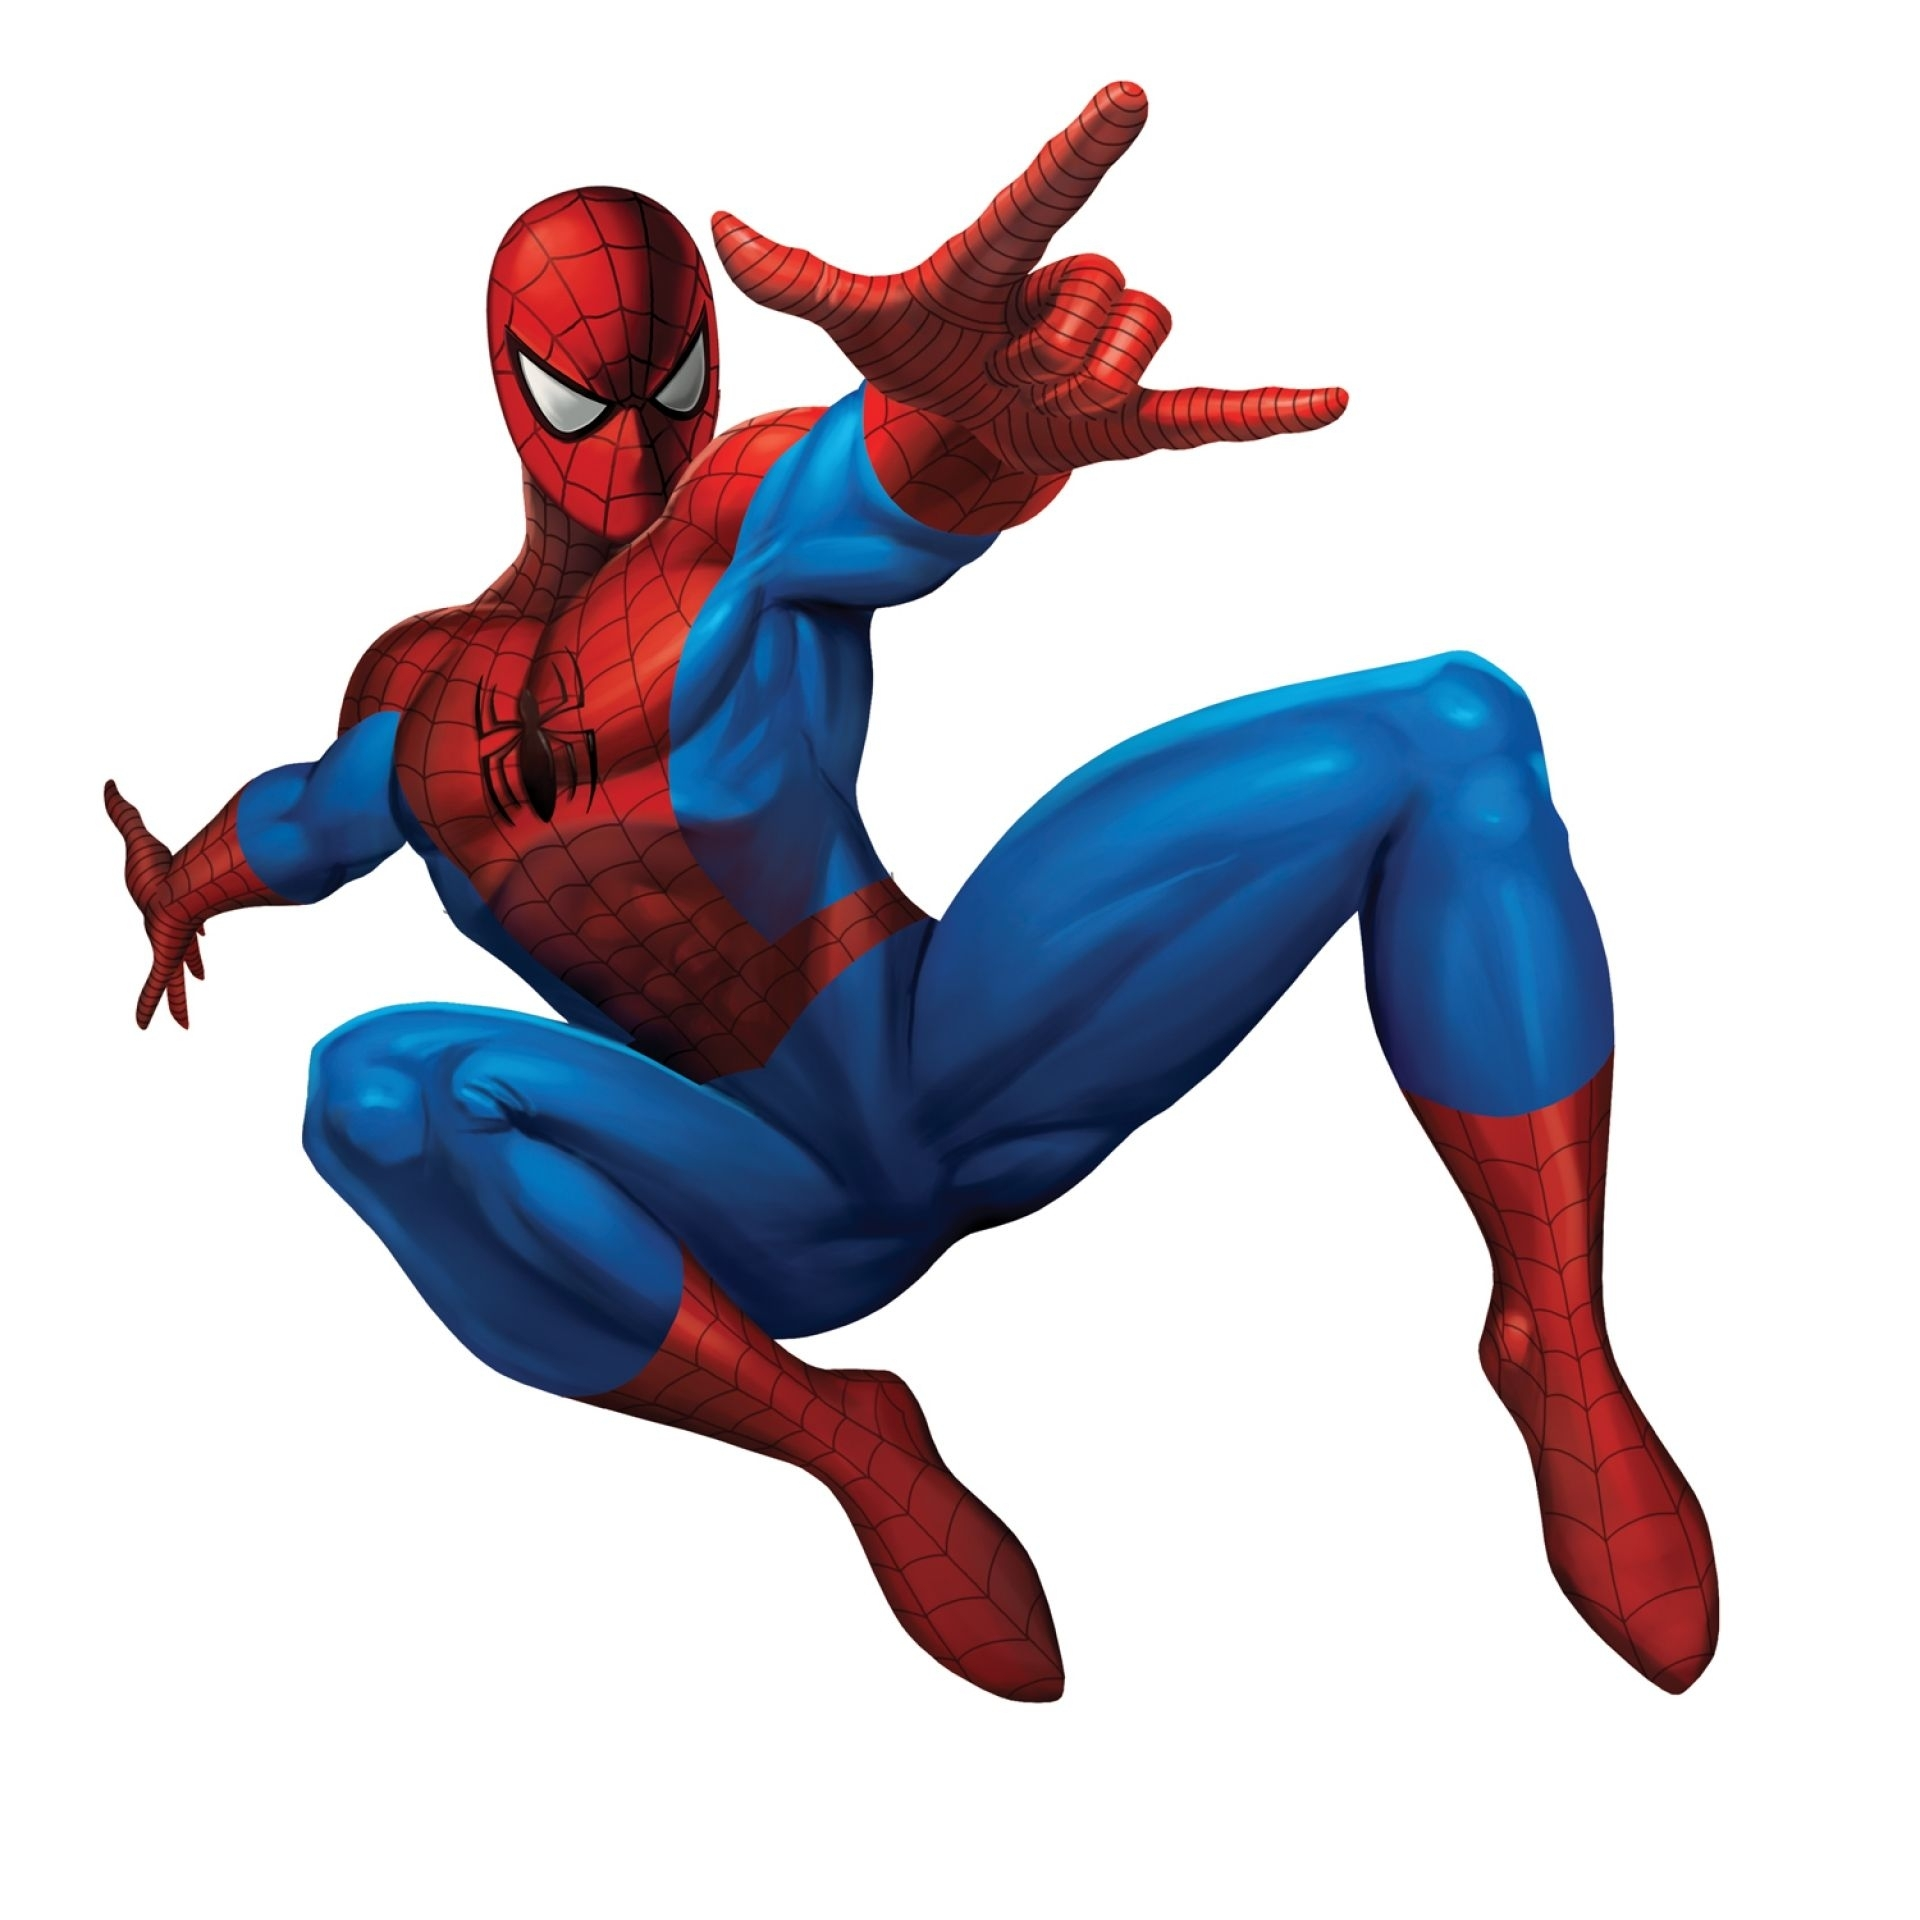 spiderman cartoon images 20745 hd wallpapers widescreen in movies